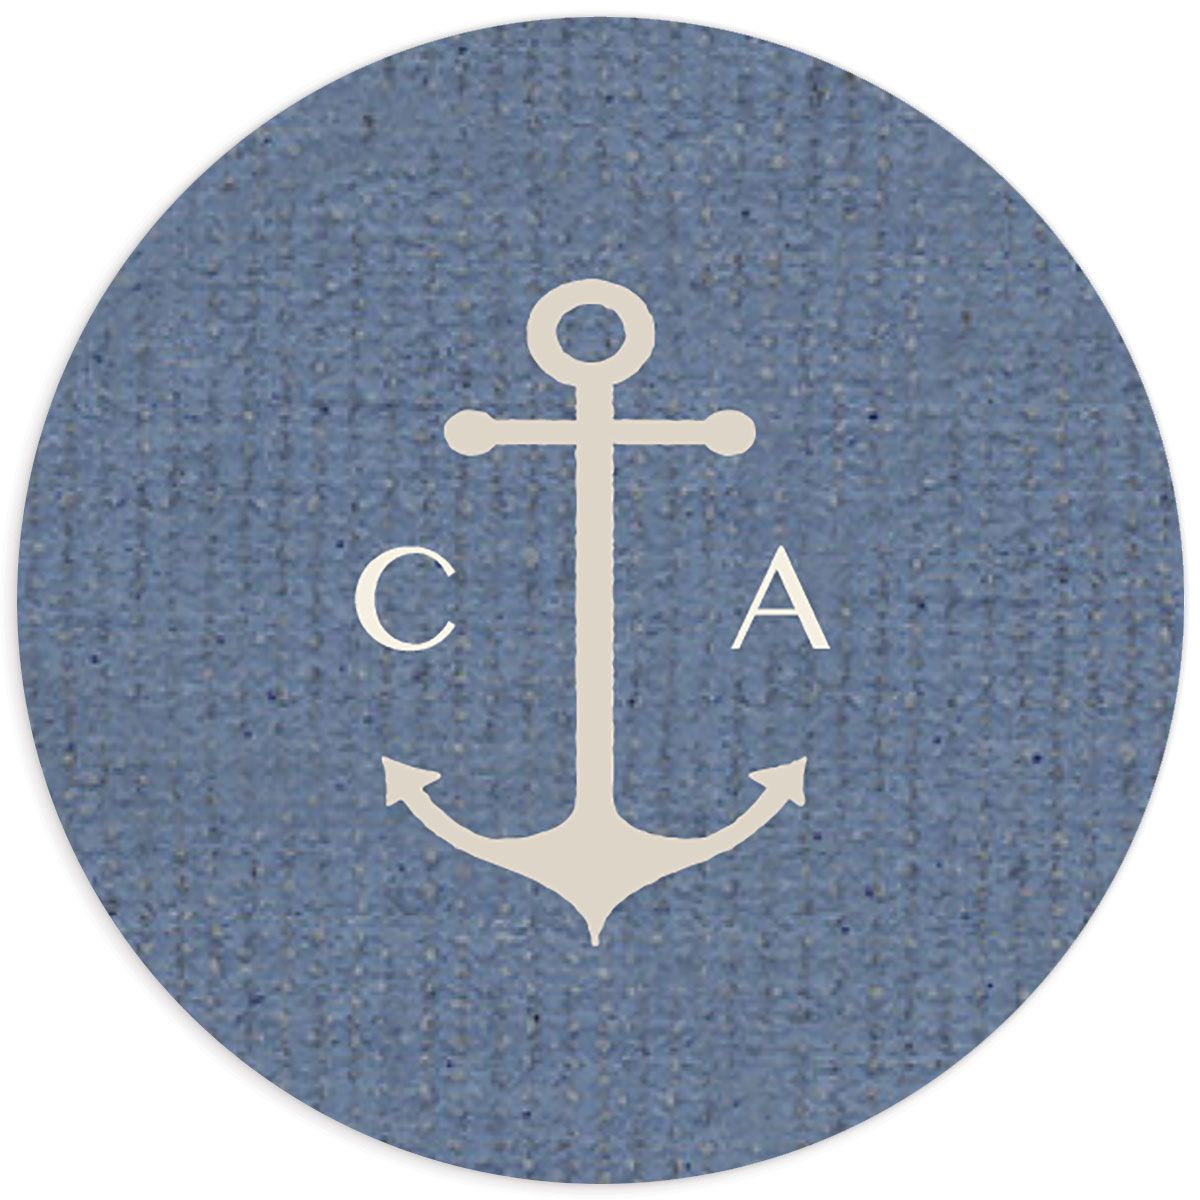 Coastal Love stickers in blue